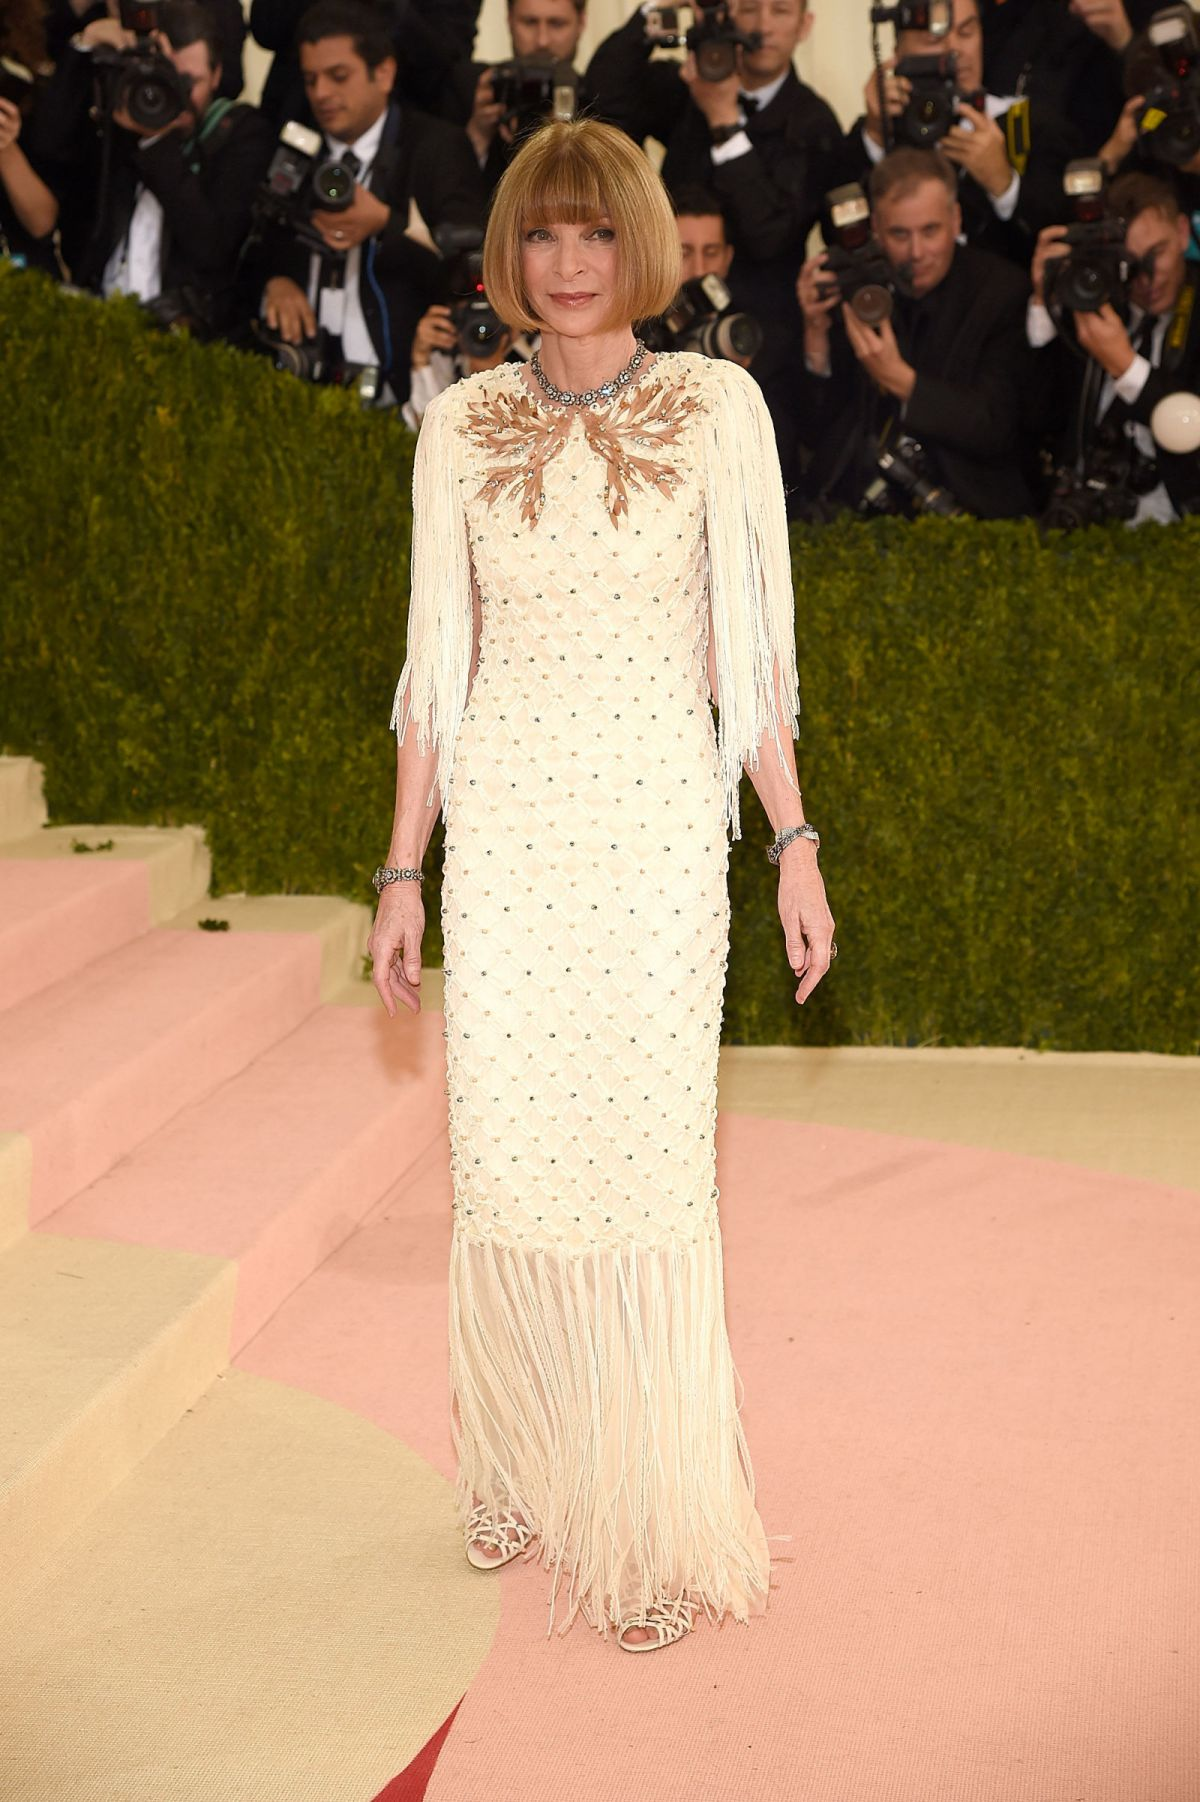 ANNA WINTOUR at Costume Institute Gala 2016 in New York 05/02/2016